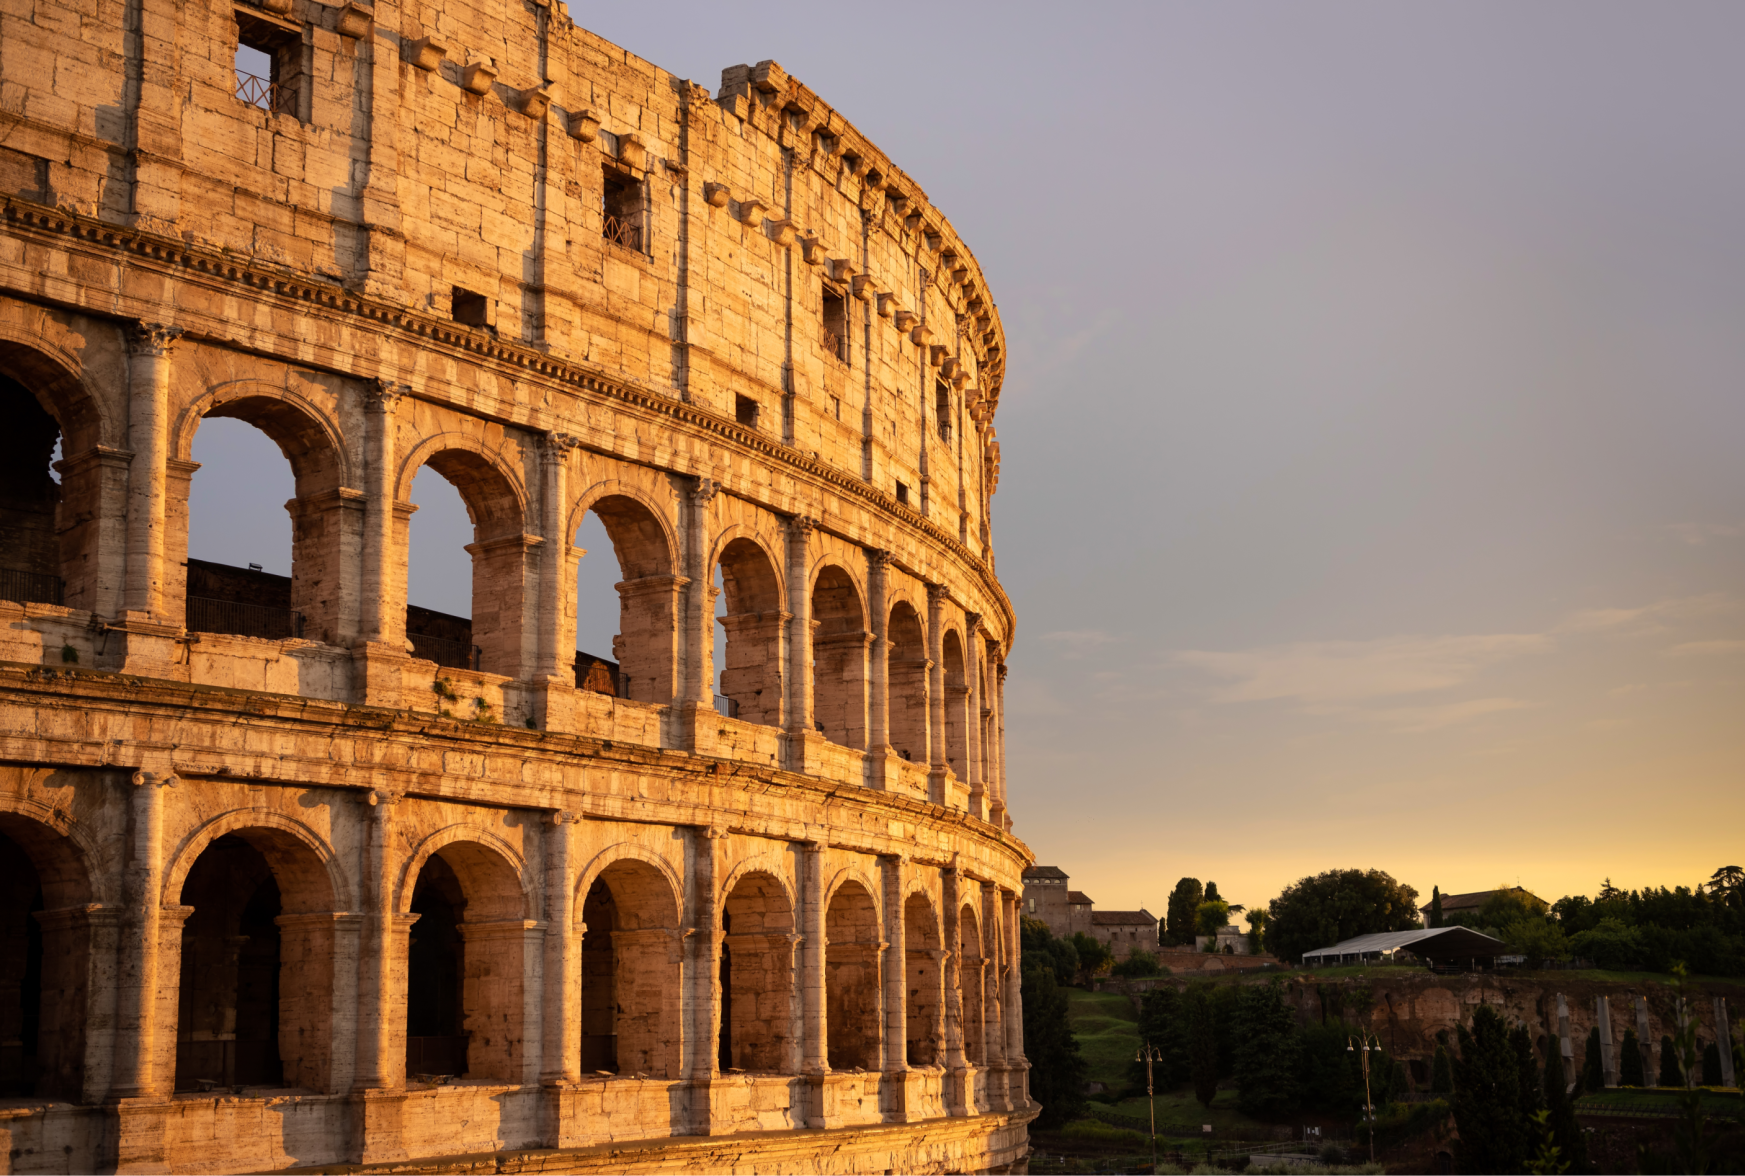 sunset over colosseum in rome italy